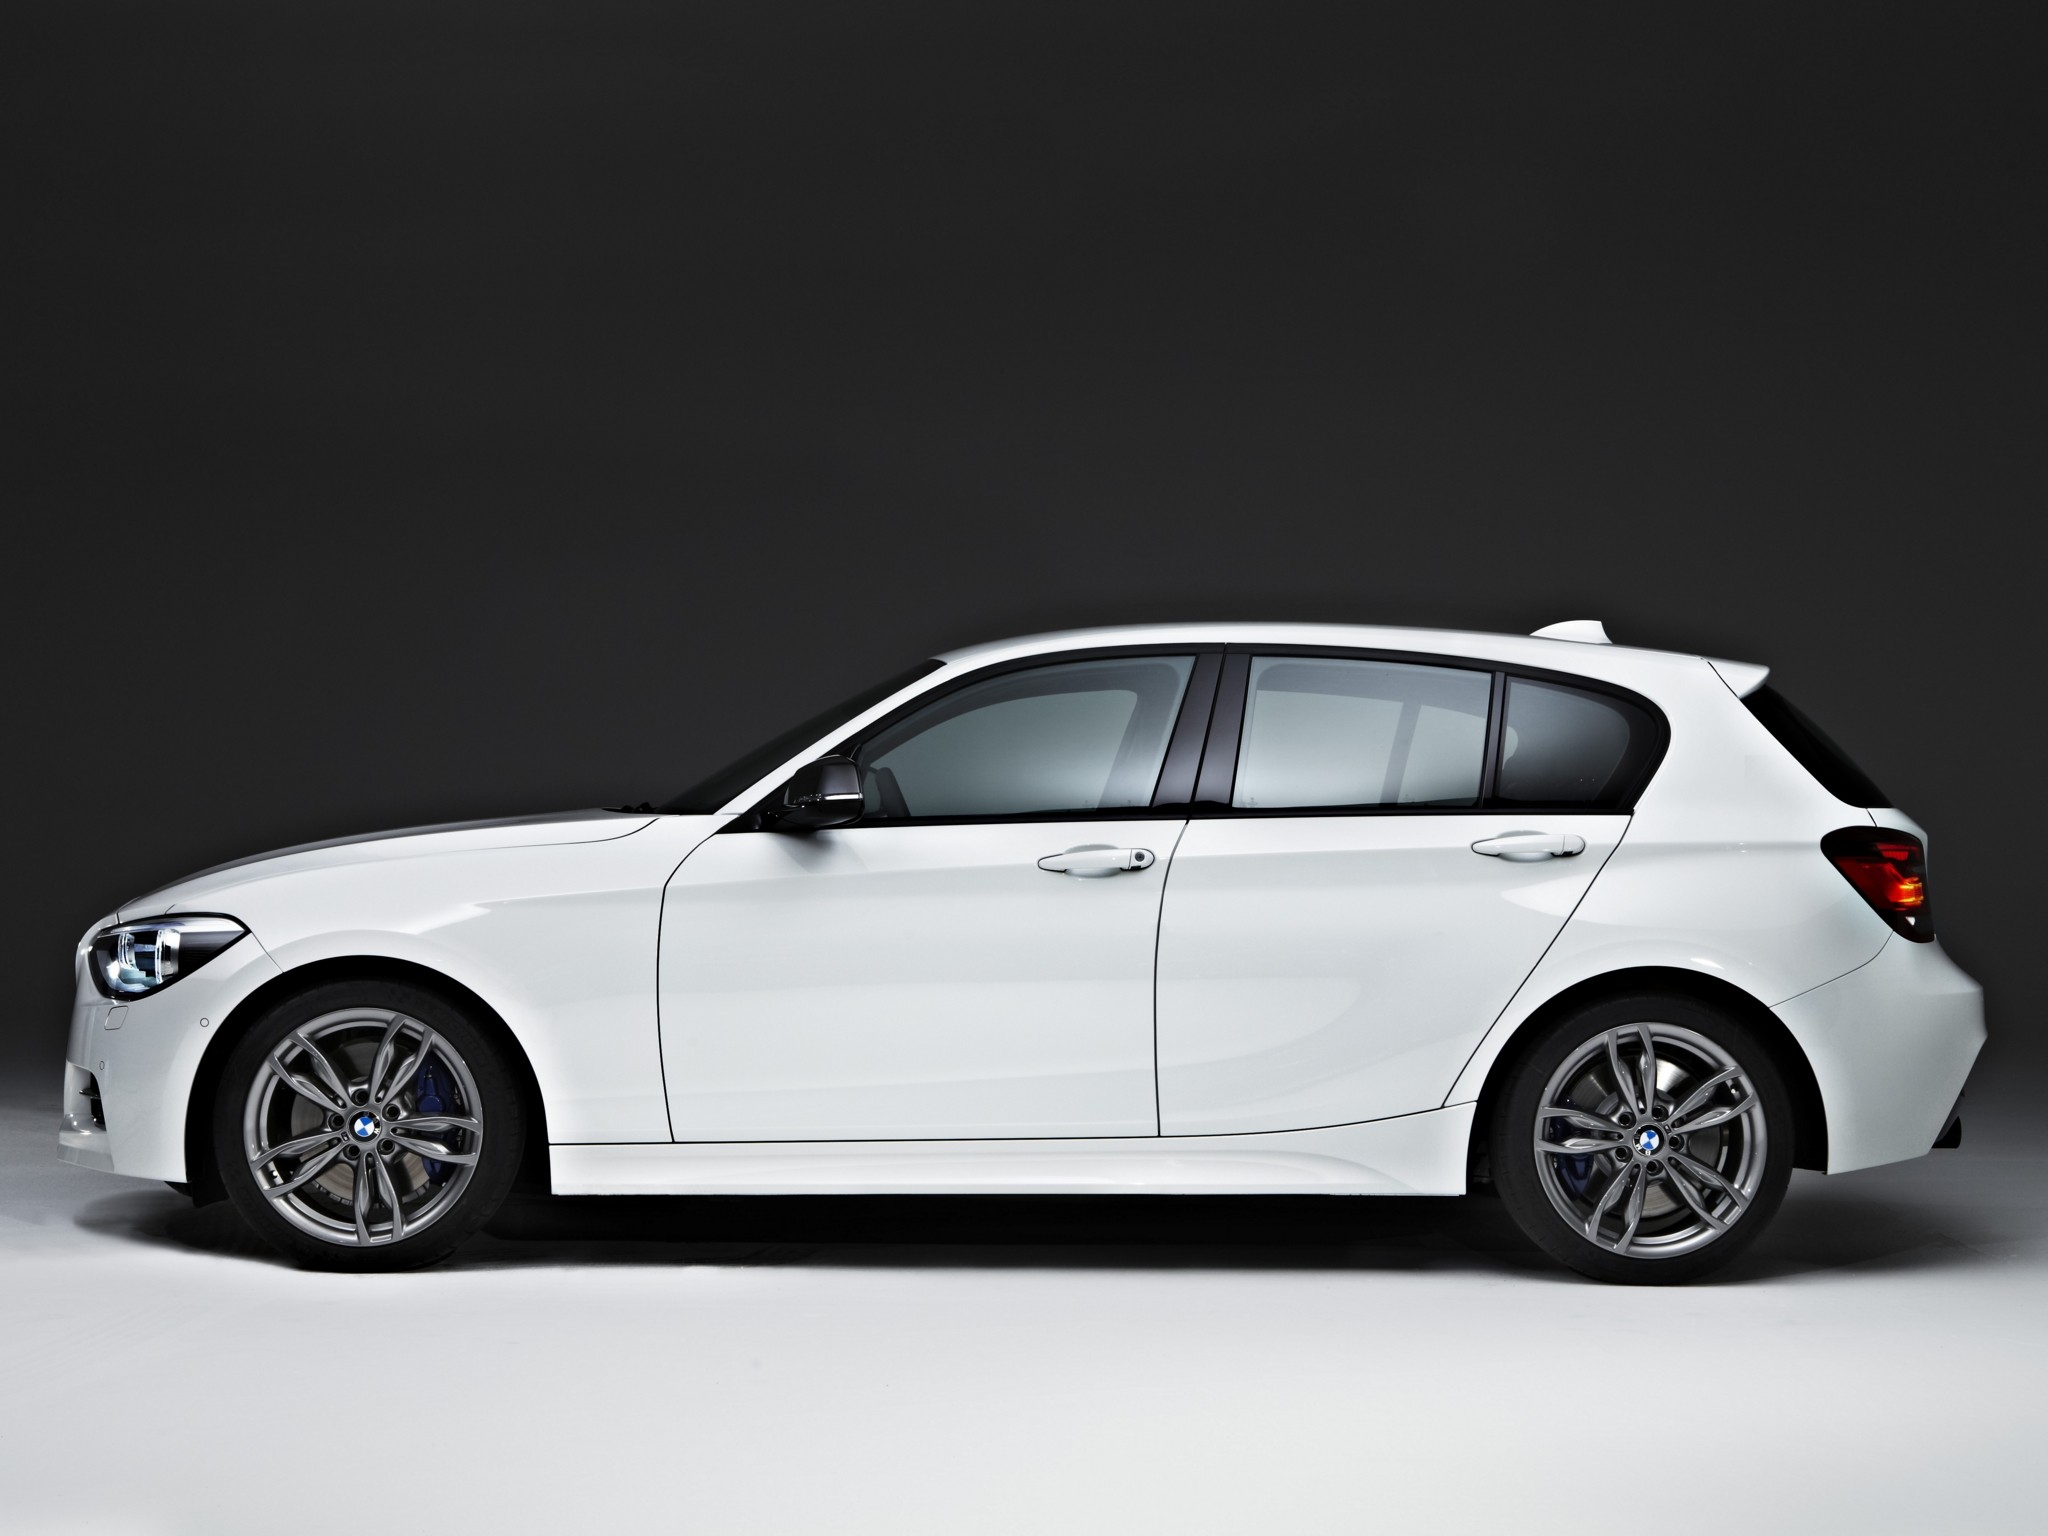 Tuning Files BMW 1 serie (F20) 118D  143hp